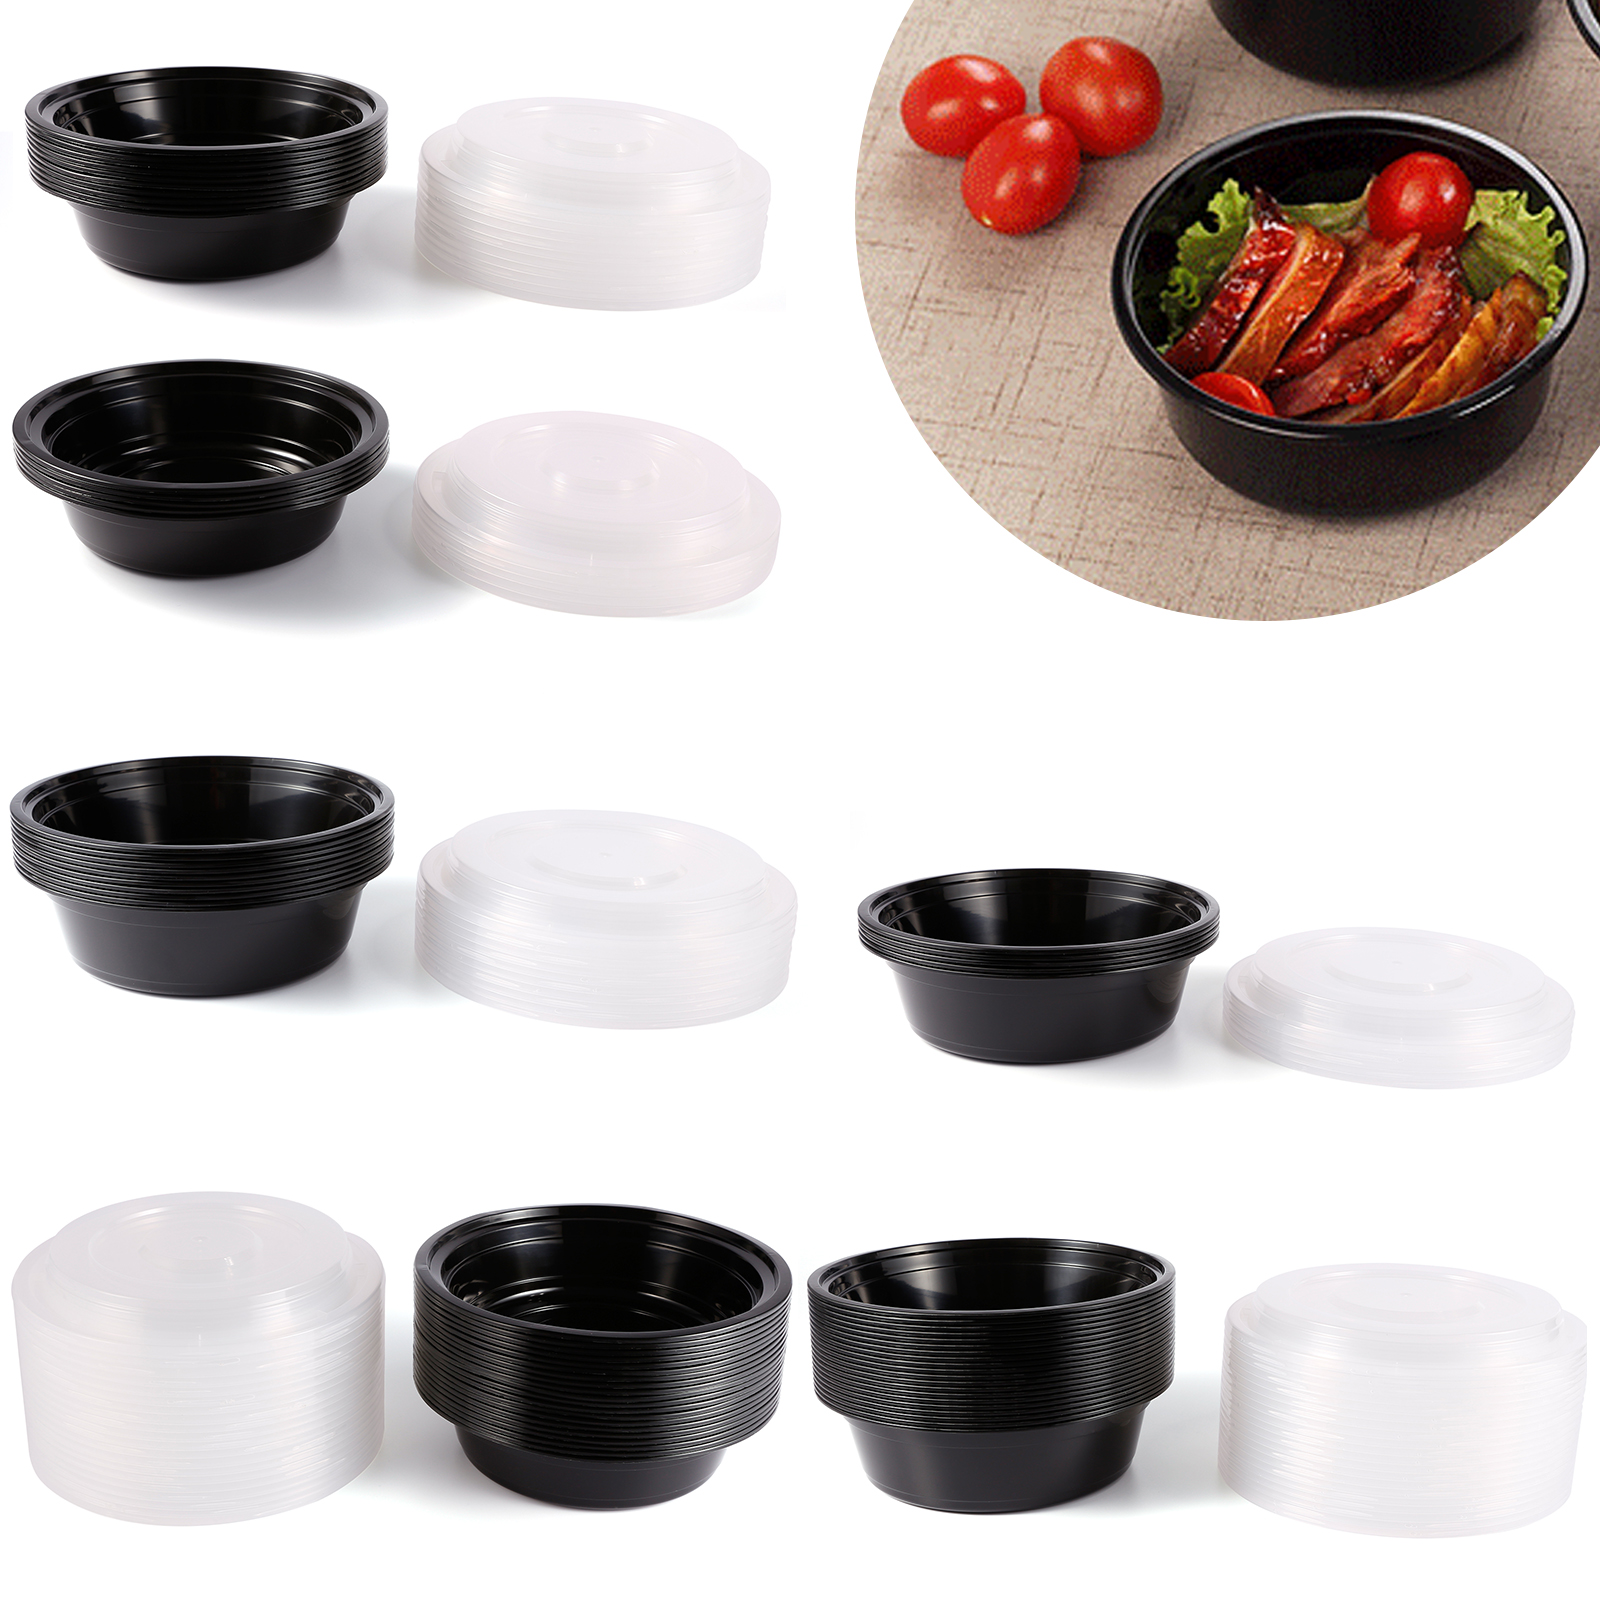 Plastic round food grade disposable containers take out